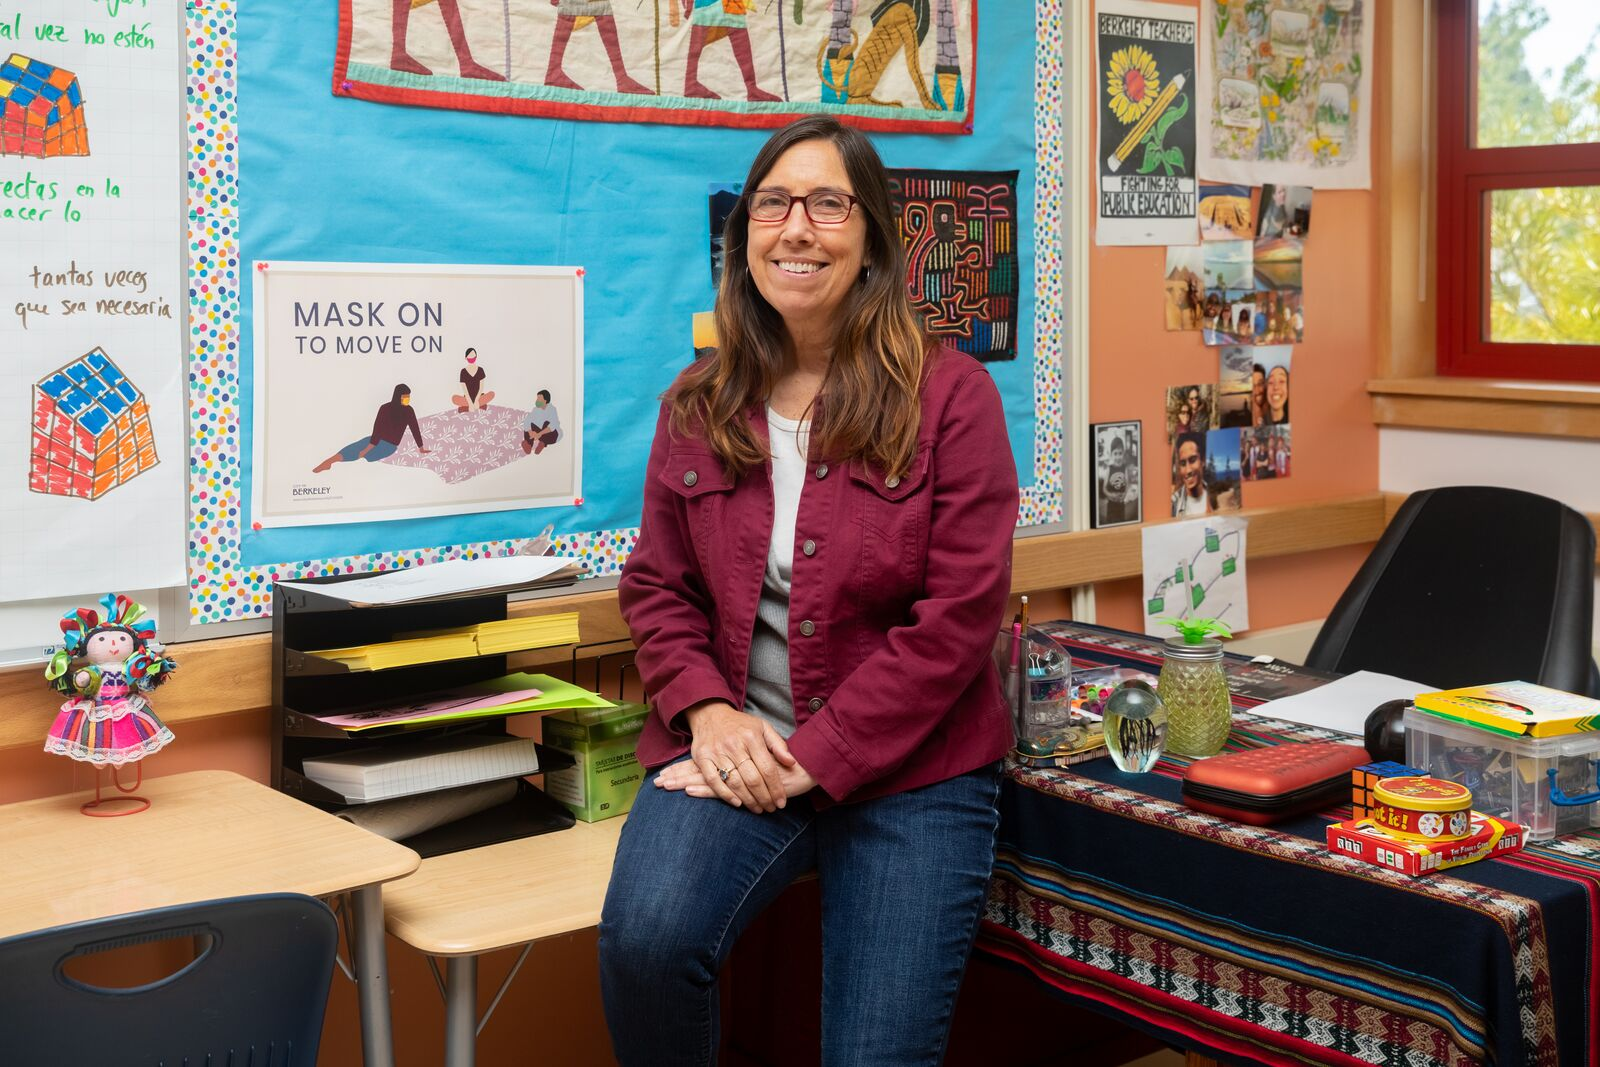 Mary Patterson poses for a photo in her classroom at Longfellow Middle School on June 1, 2021. Credit: Kelly Sullivan